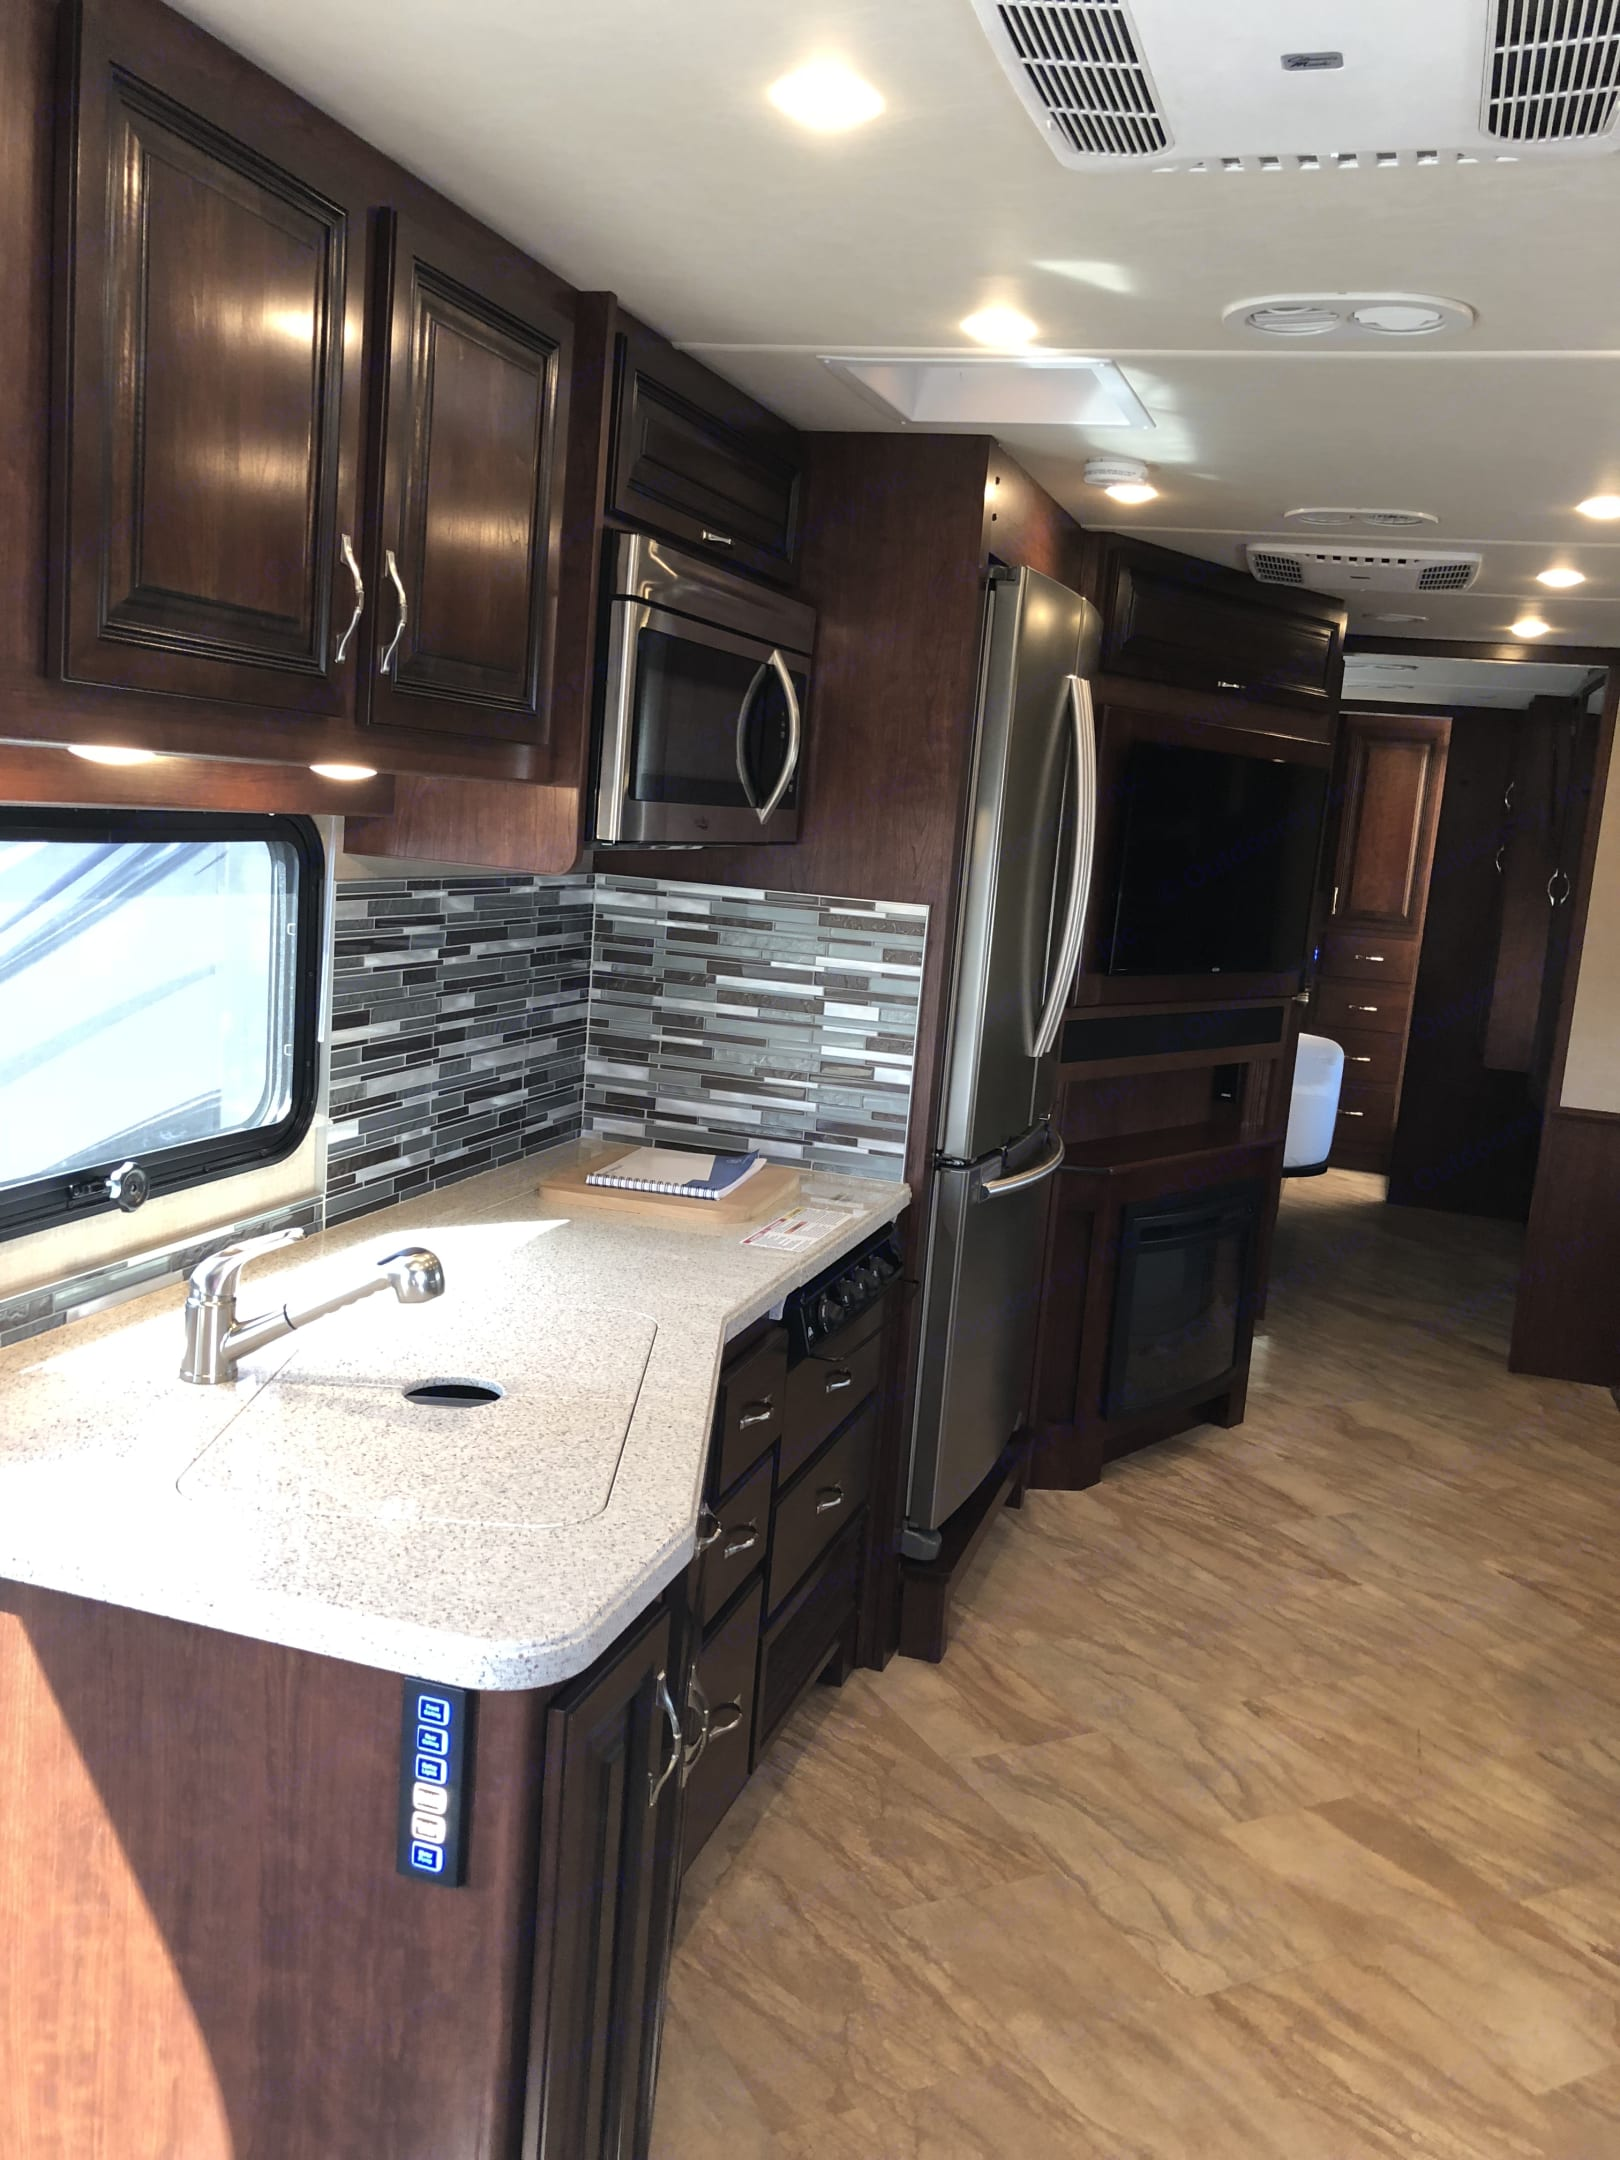 """Kitchen with the full size residential french door refrigerator, 3 burner cook-top, microwave and convection oven combo.  The living area features a 40"""" flat screen TV above a functional electric fireplace to keep you warm in the winter months. . Holiday Rambler Vacationer 35K 2017"""